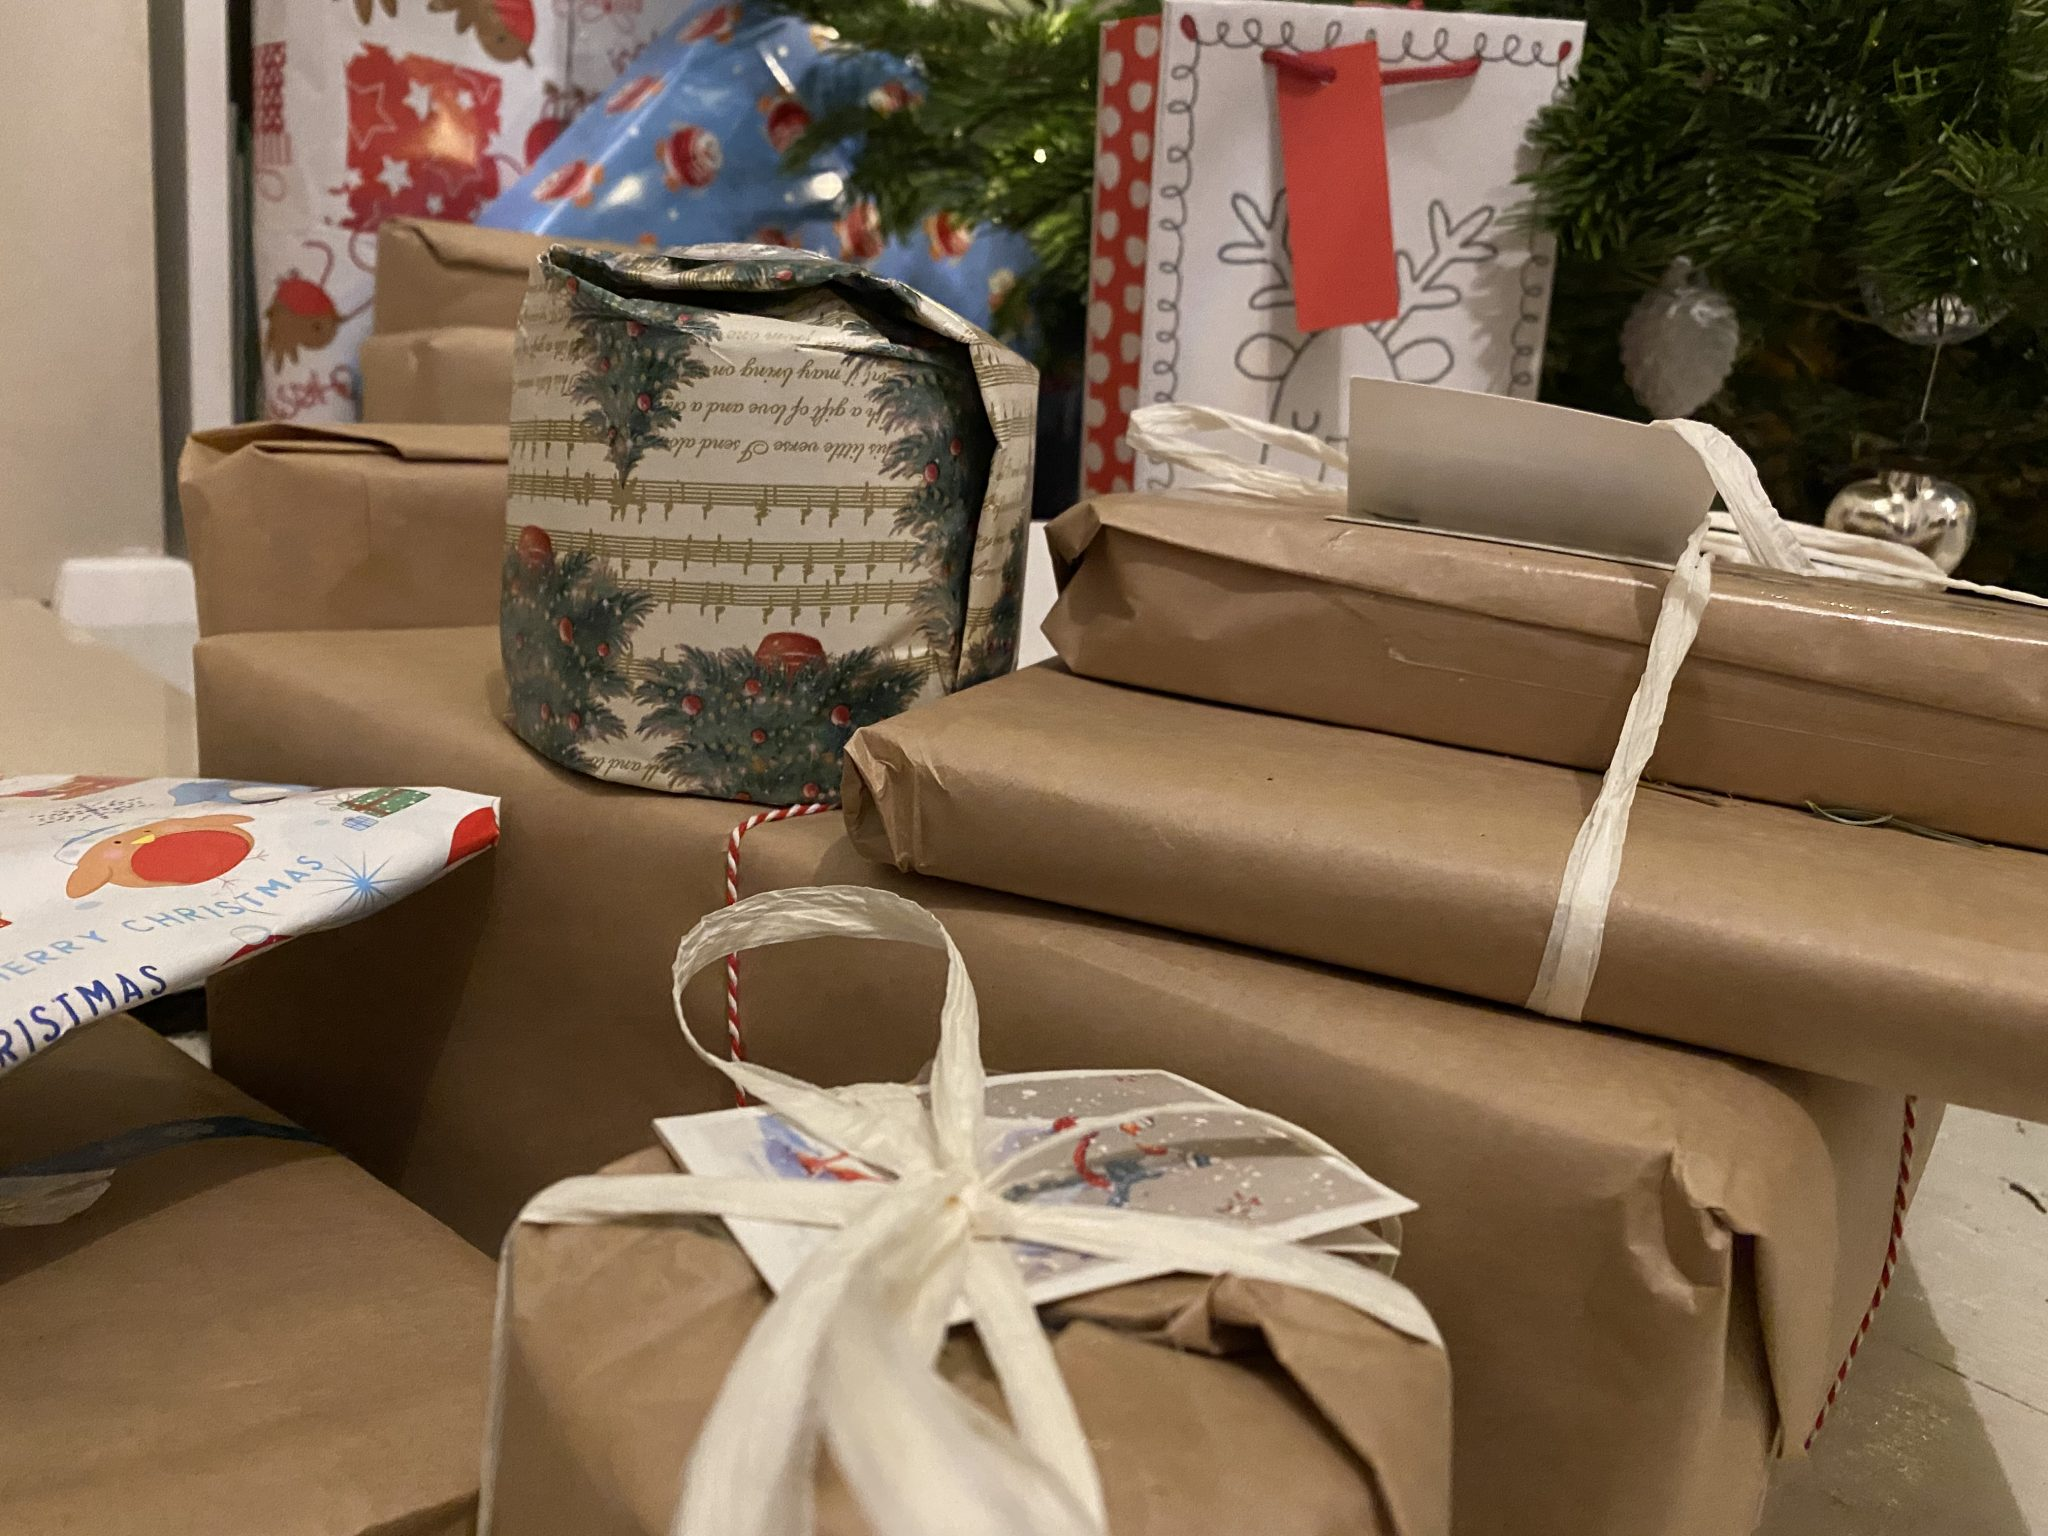 Eco-friendly Christmas gifts in demand in 2020